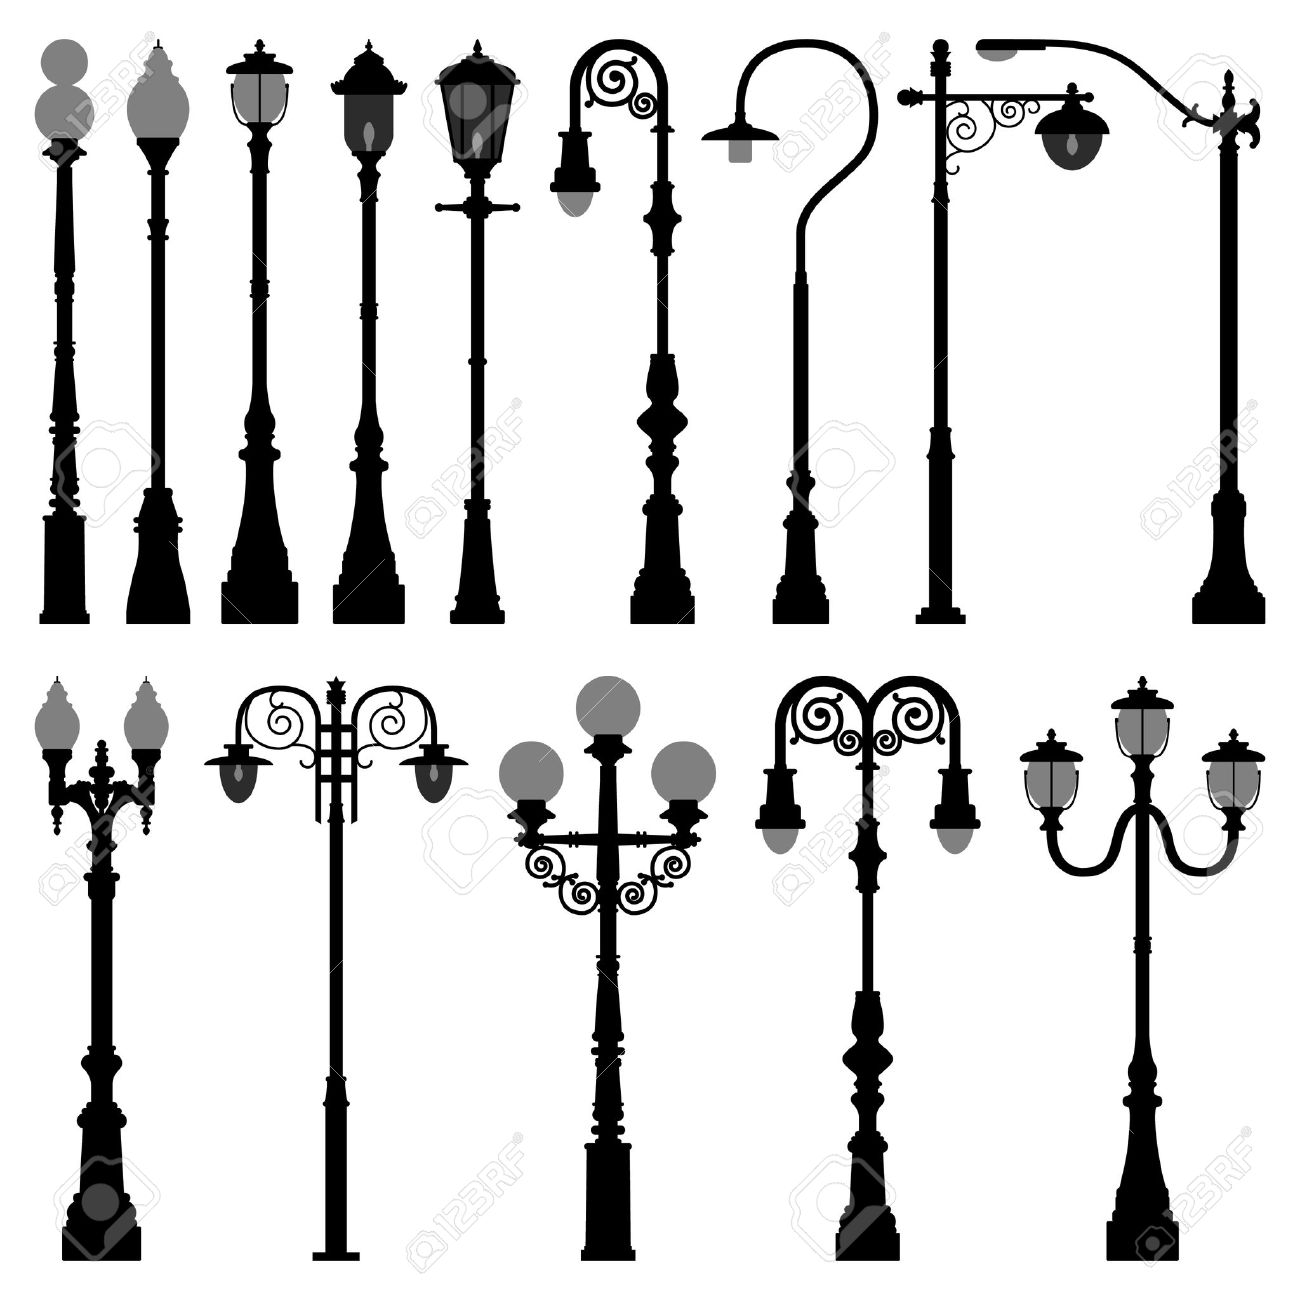 Lamp Post Lamppost Street Road Light Royalty Free Cliparts.